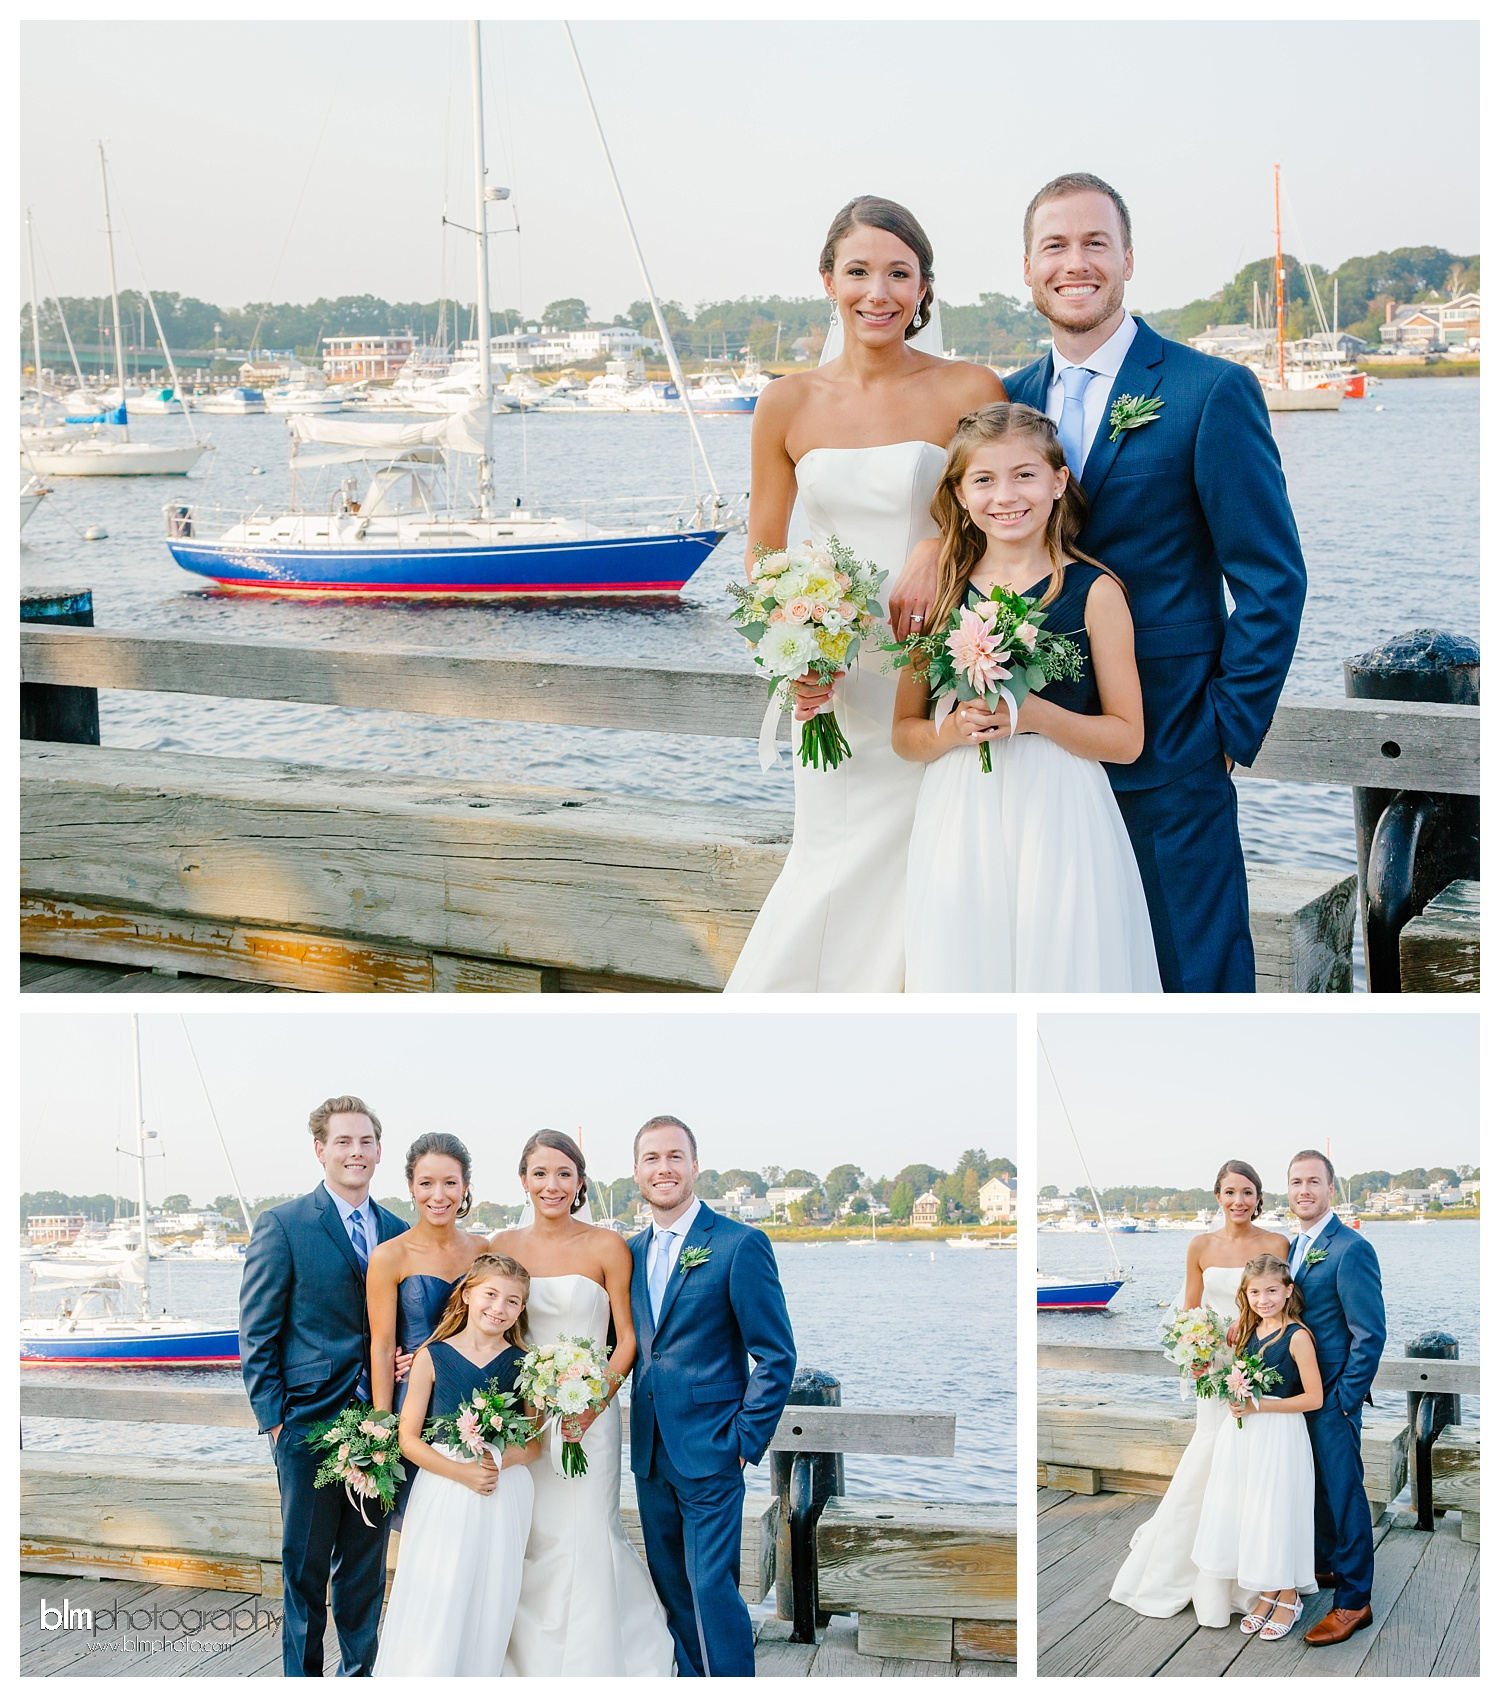 227Nathalie & Kirwan Married at The Maritime Museum_20170916_3872.jpg